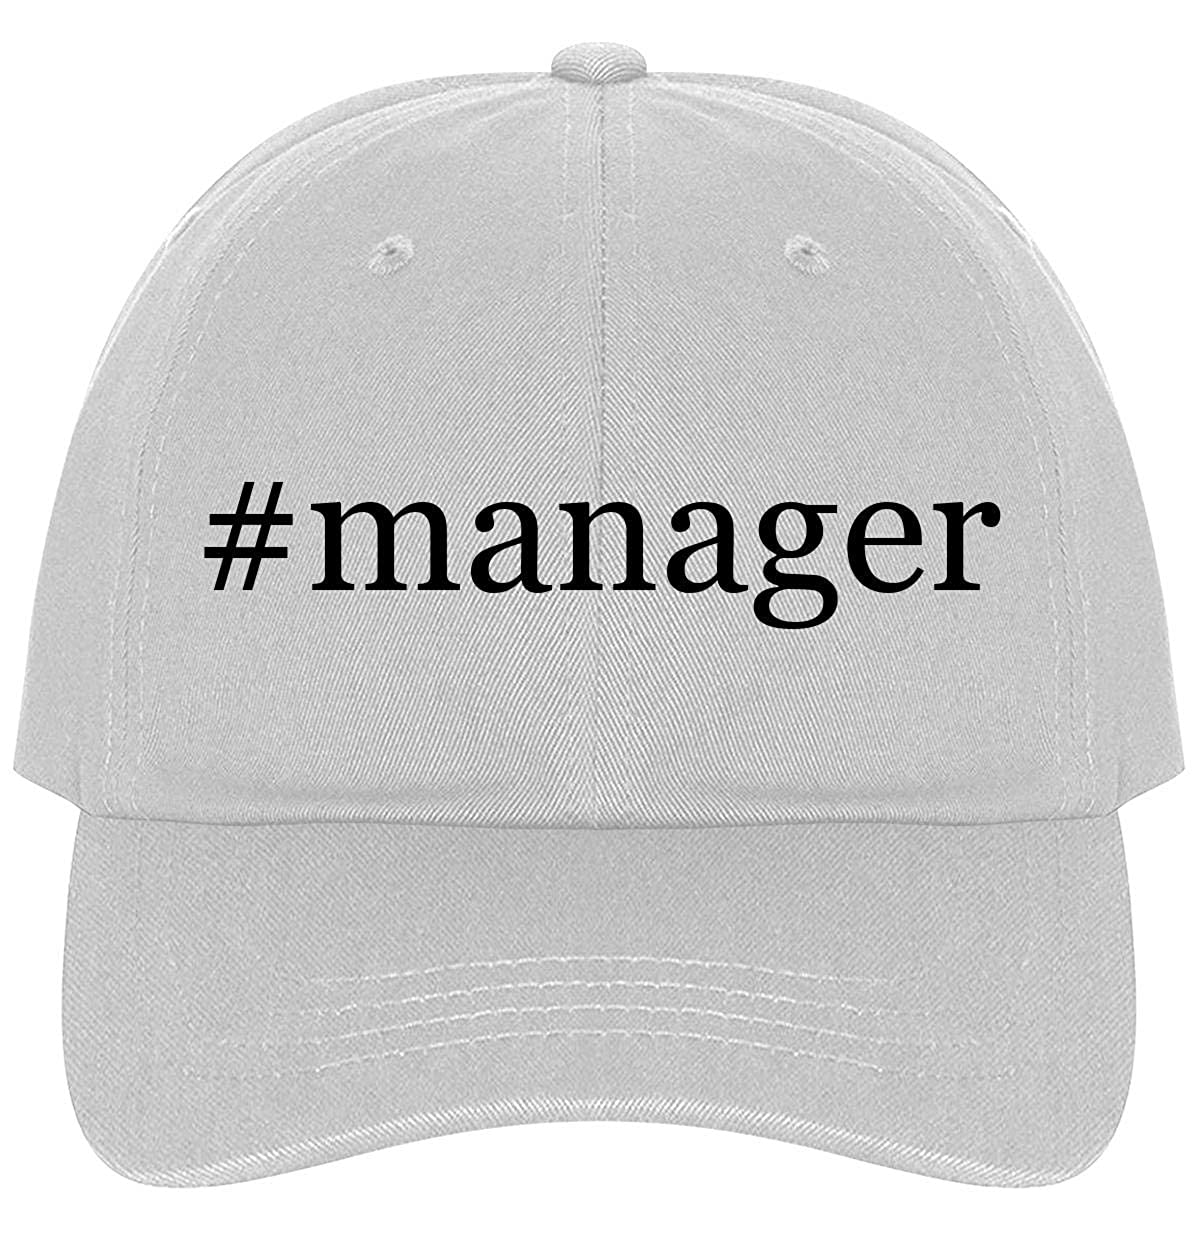 The Town Butler #Manager A Nice Comfortable Adjustable Hashtag Dad Hat Cap